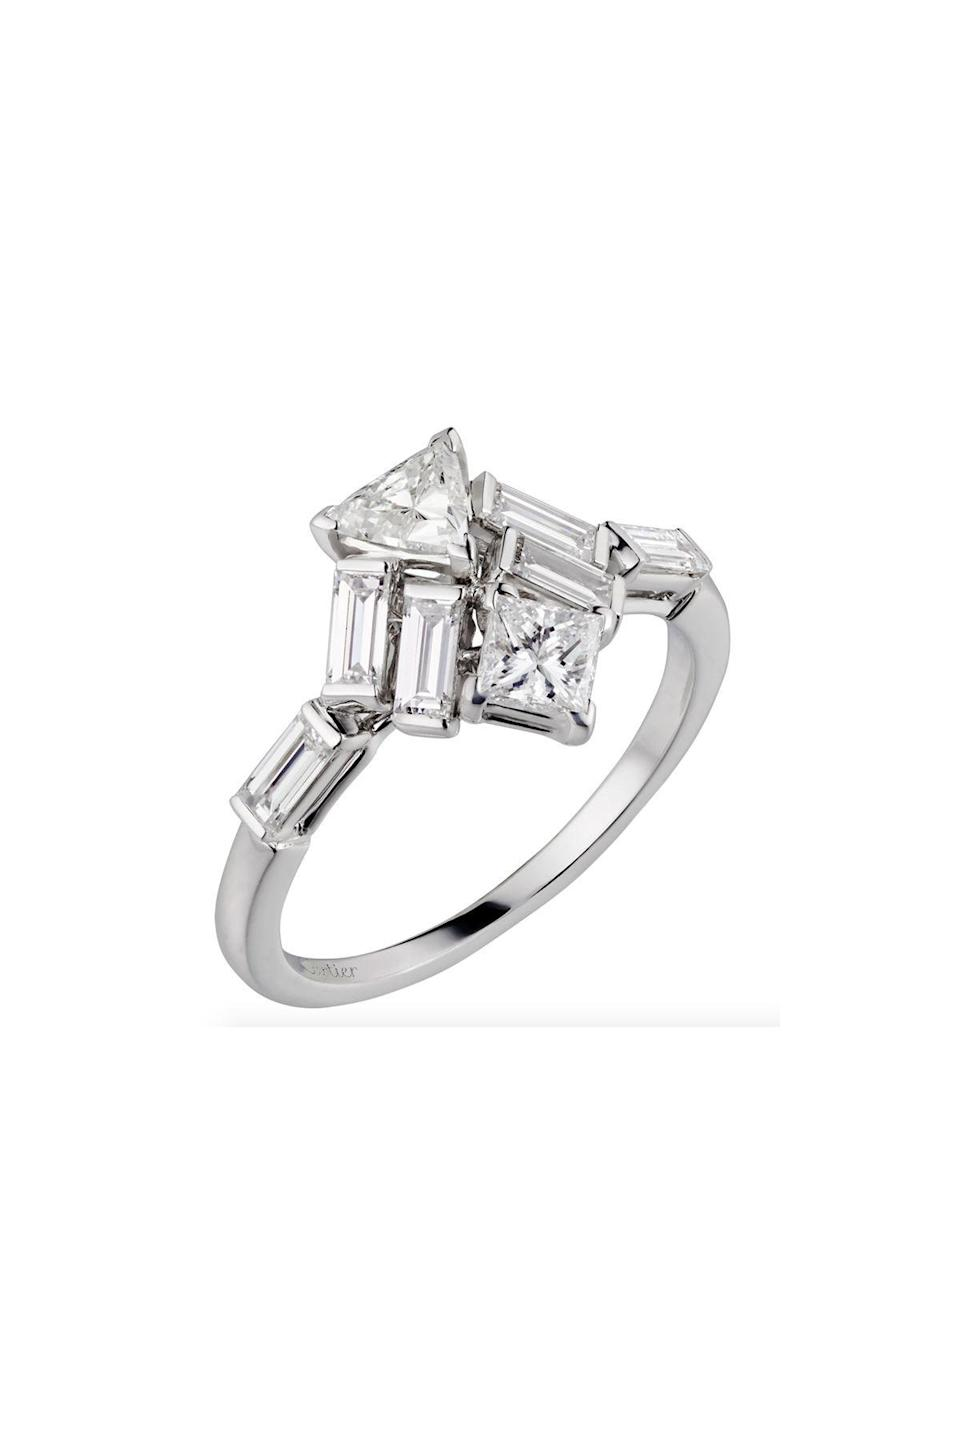 """<p><strong>Cartier</strong></p><p>cartier.com</p><p><strong>$13000.00</strong></p><p><a href=""""https://www.cartier.com/en-us/collections/jewelry/rings/diamond-collection/n4752700-reflection-de-cartier-ring.html"""" rel=""""nofollow noopener"""" target=""""_blank"""" data-ylk=""""slk:Shop Now"""" class=""""link rapid-noclick-resp"""">Shop Now</a></p><p>One word sums up this ring: Wow. Expertly cut diamonds are set together to showcase that more really is more. </p>"""